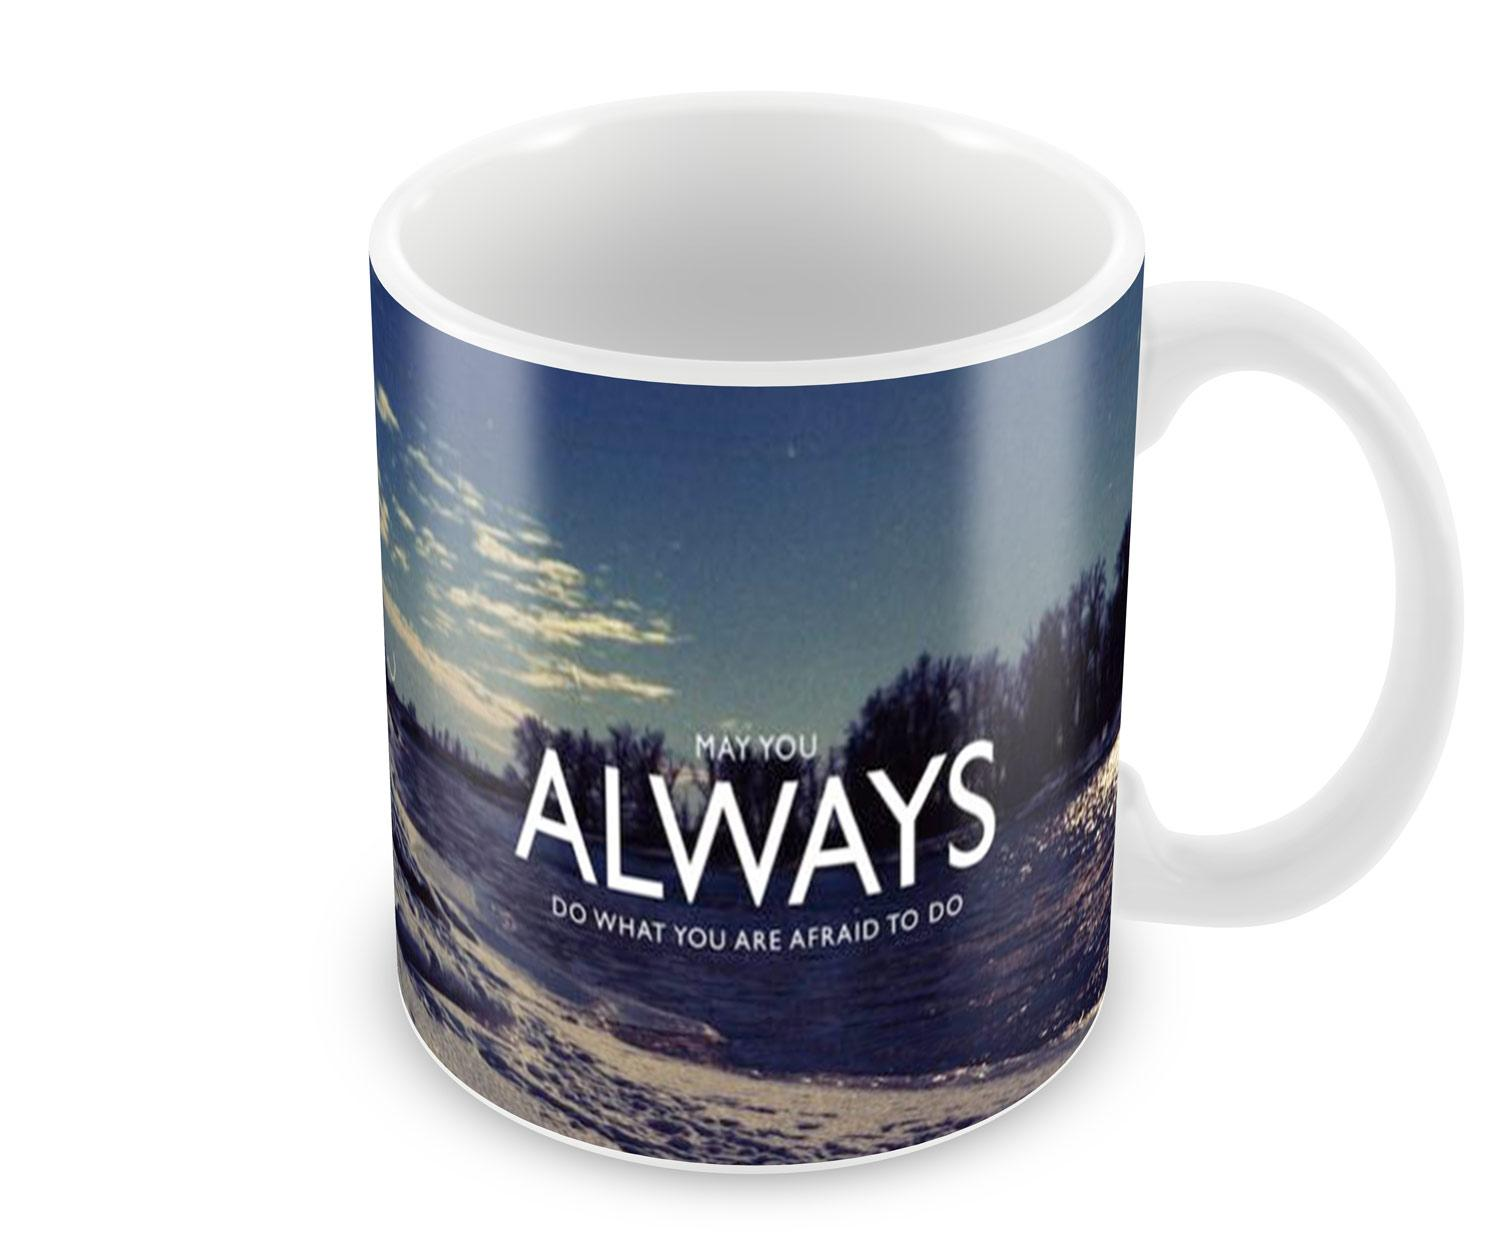 https://printsflyer.com/what-is-sublimation-printing/